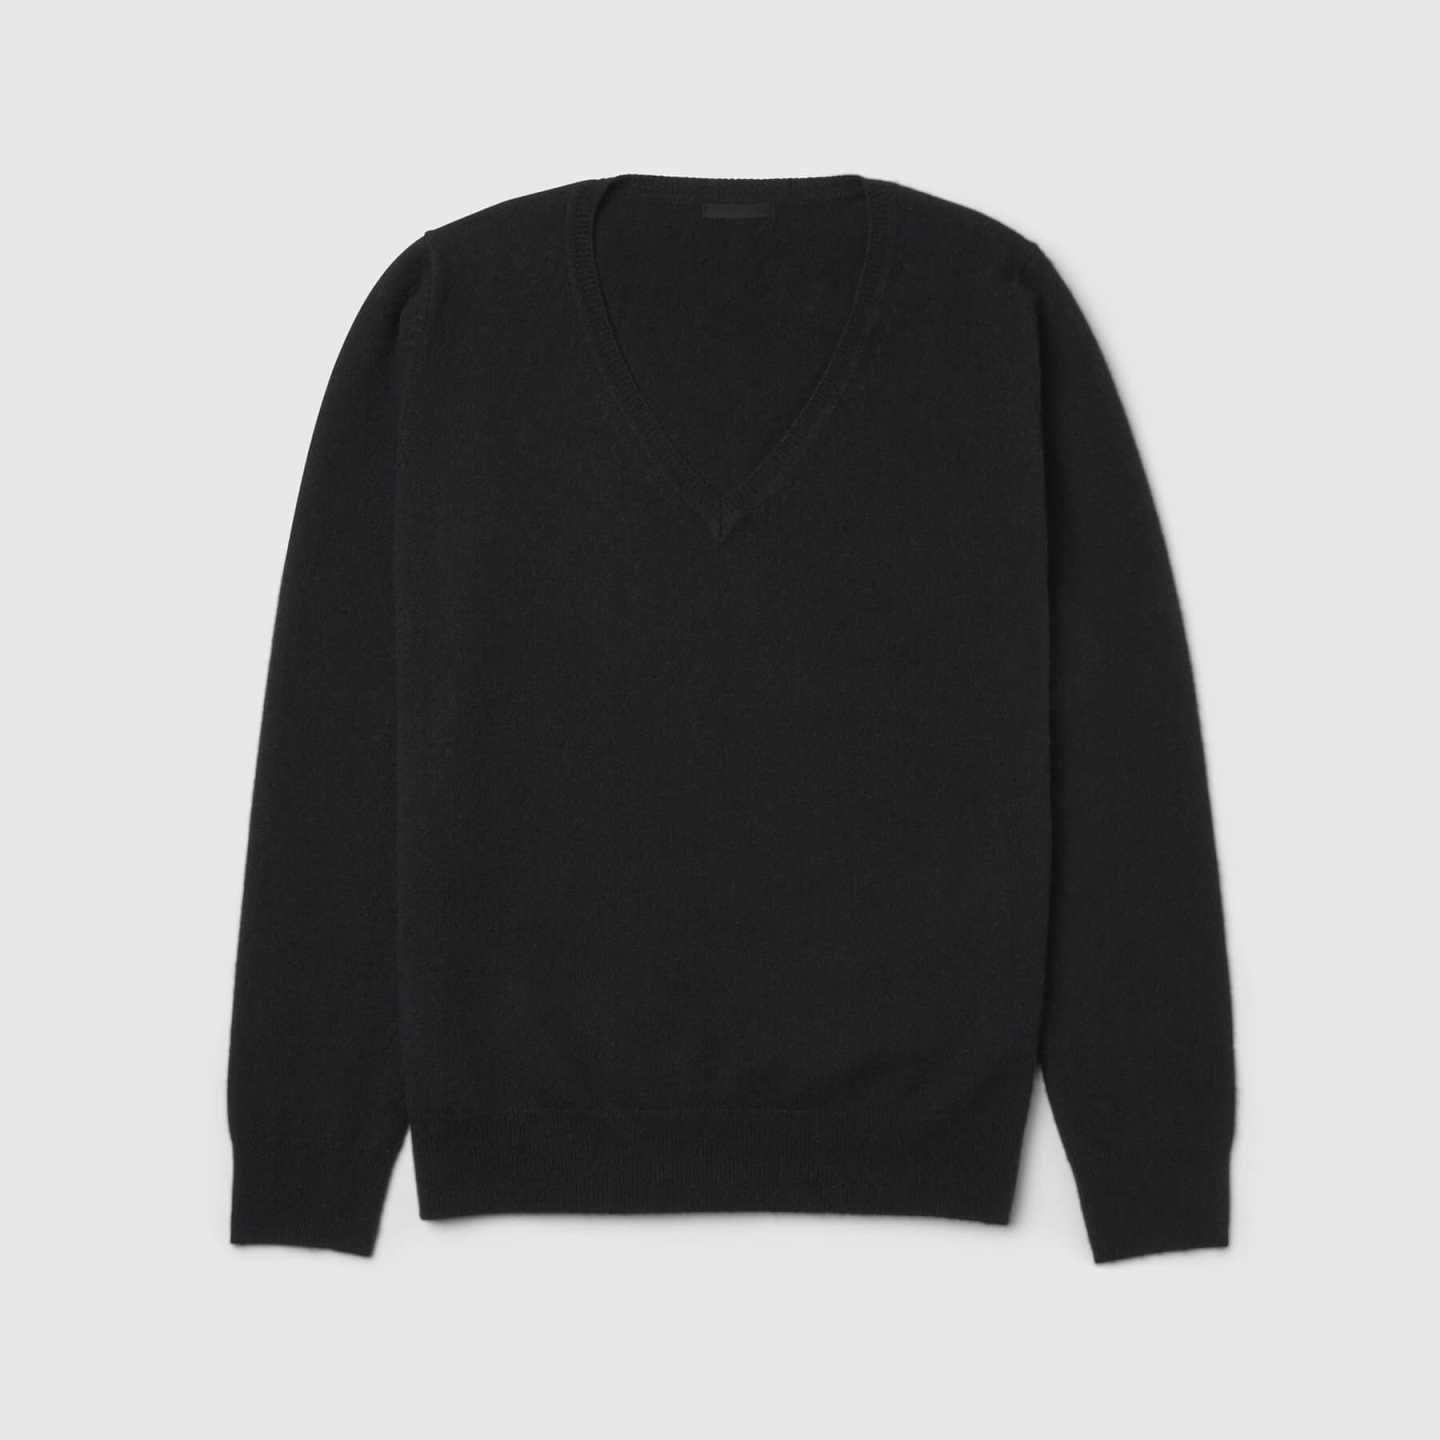 black cashmere v-neck sweater women